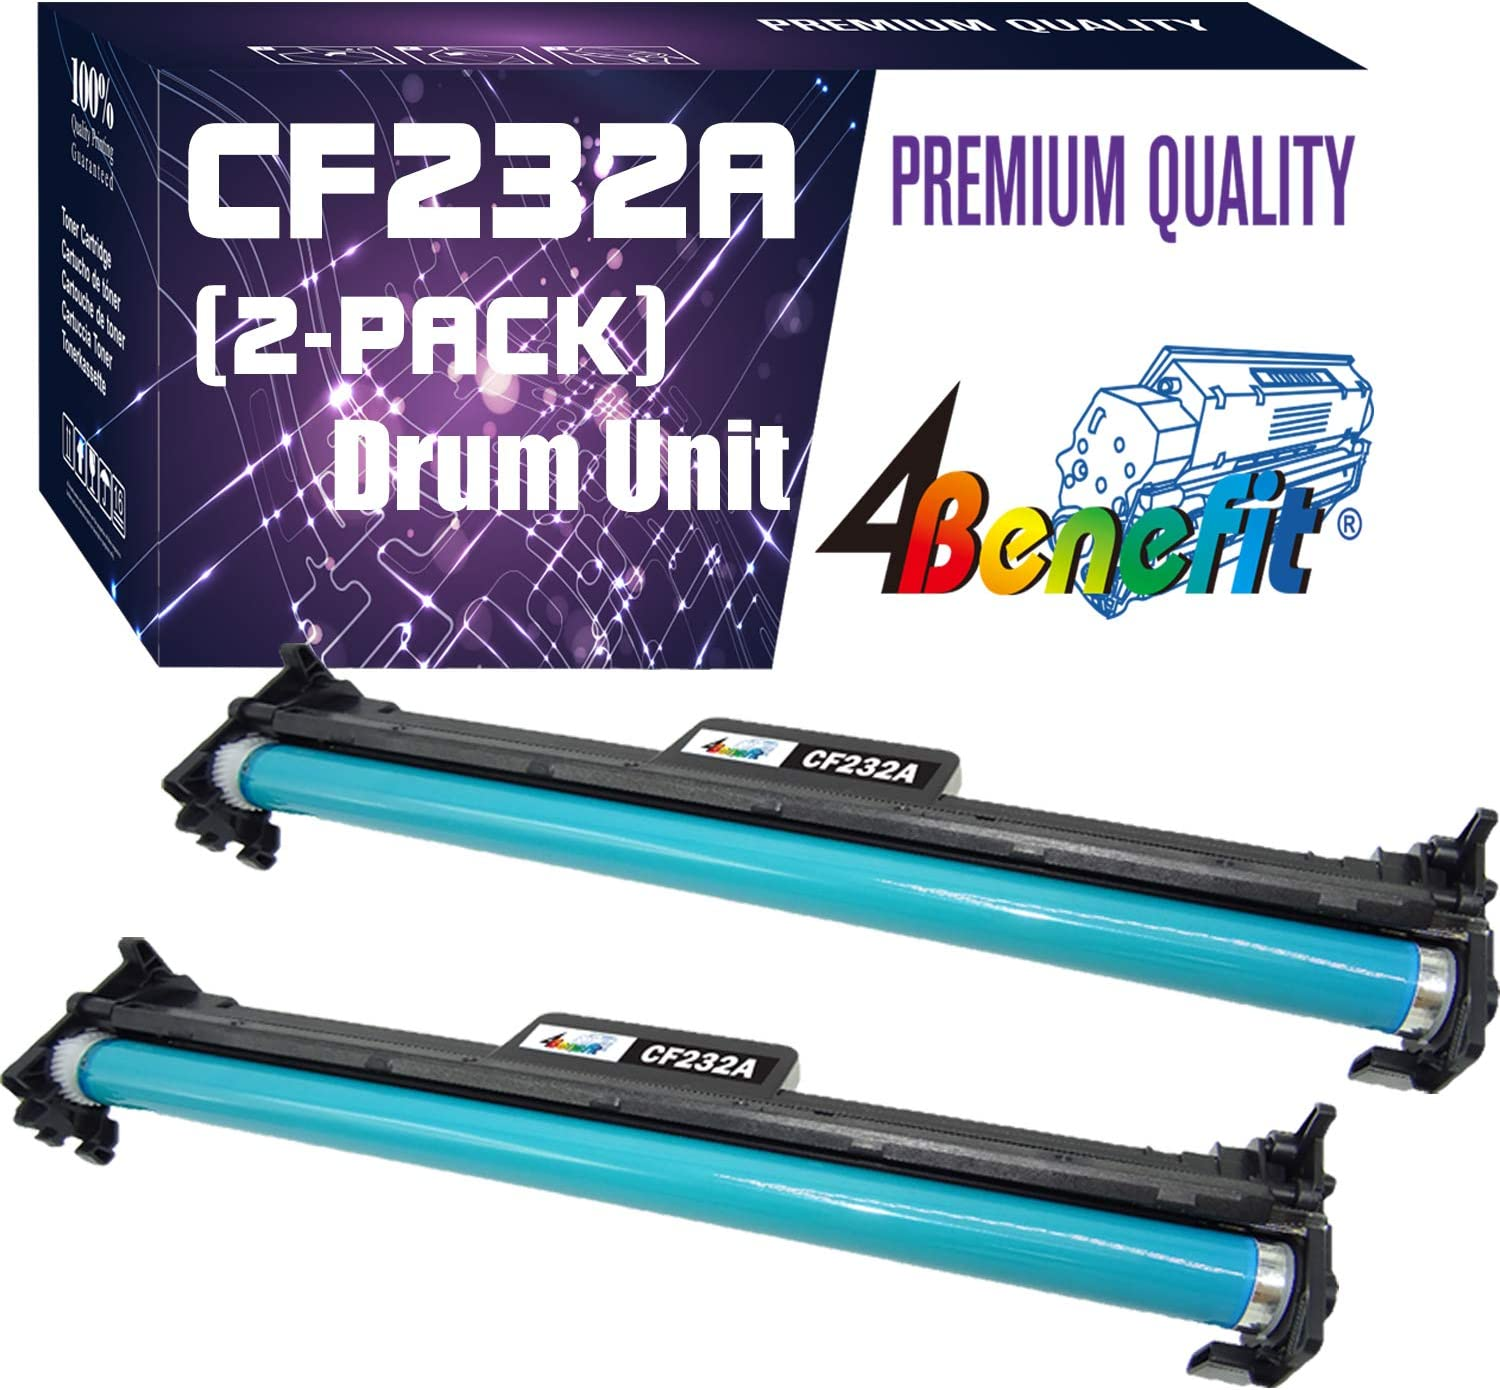 (1-Pack, Drum Unit) Compatible 32A 232A CF232A Imaging Drum Unit Used for HP Laserjet Pro M203dn M203dw M227d M227fdn M227fdw M227sdn Printer, by 4Benefit